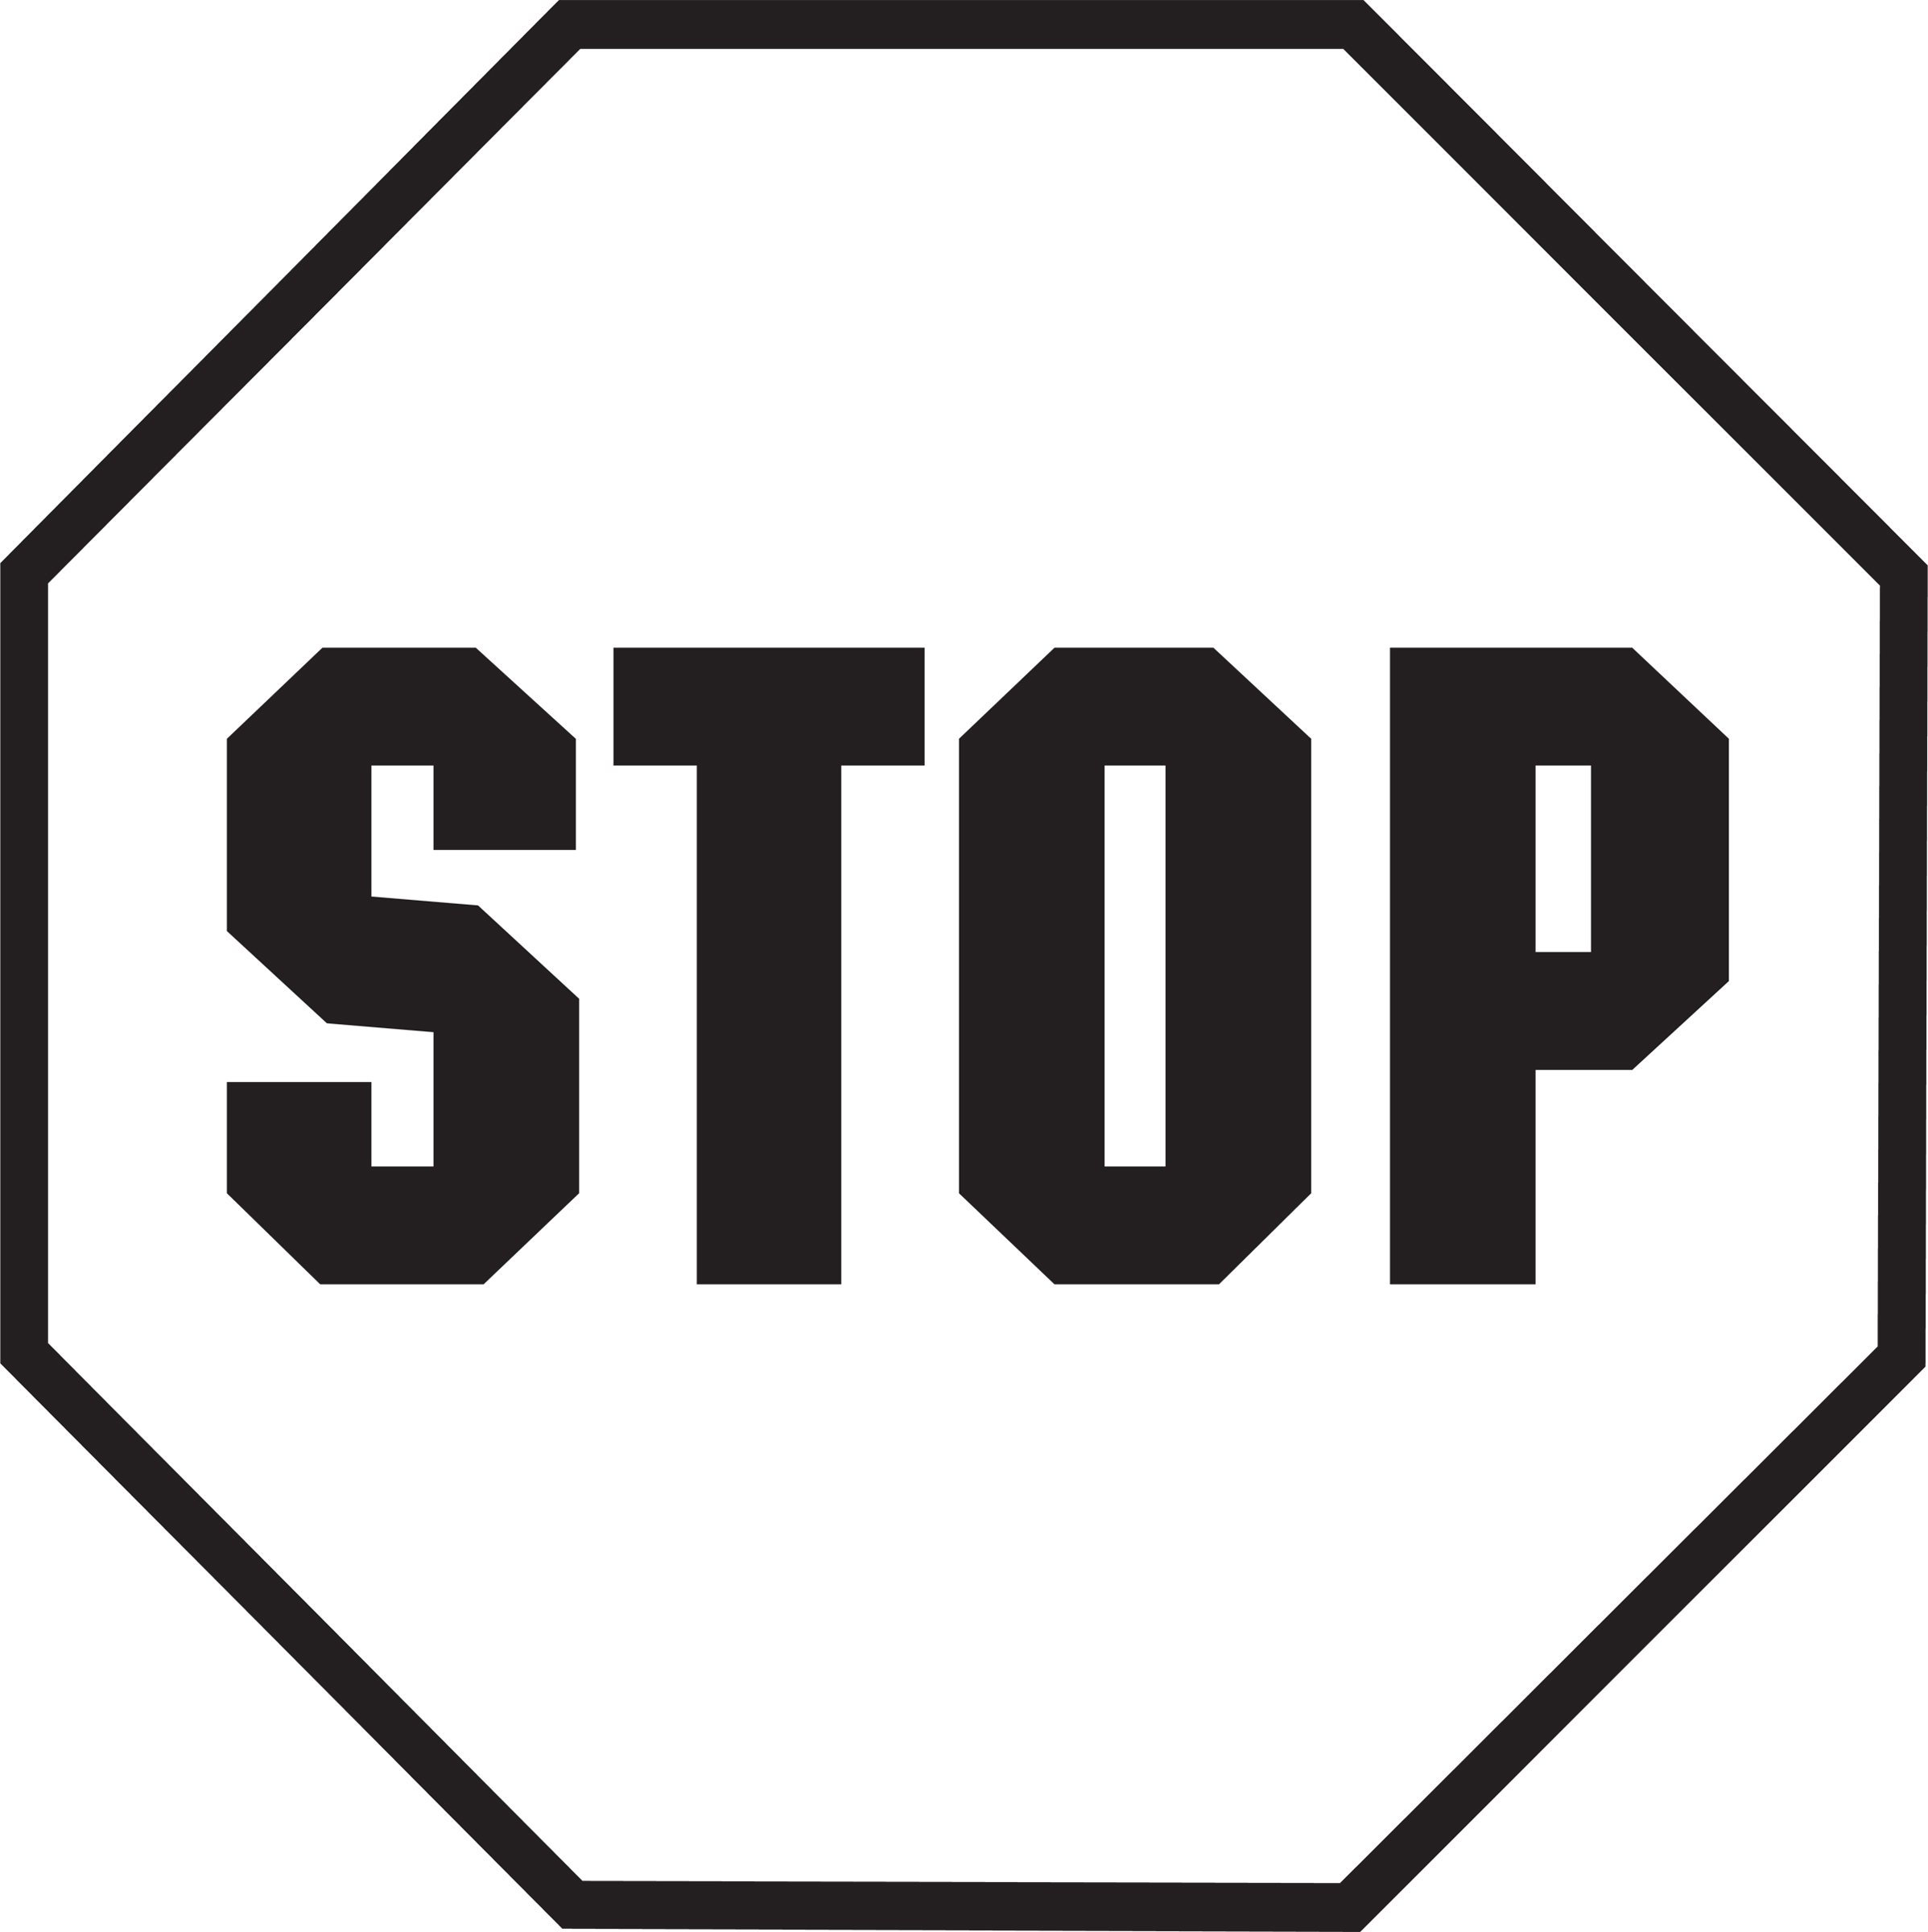 2395x2400 Stop Sign Clipart Images 6 2